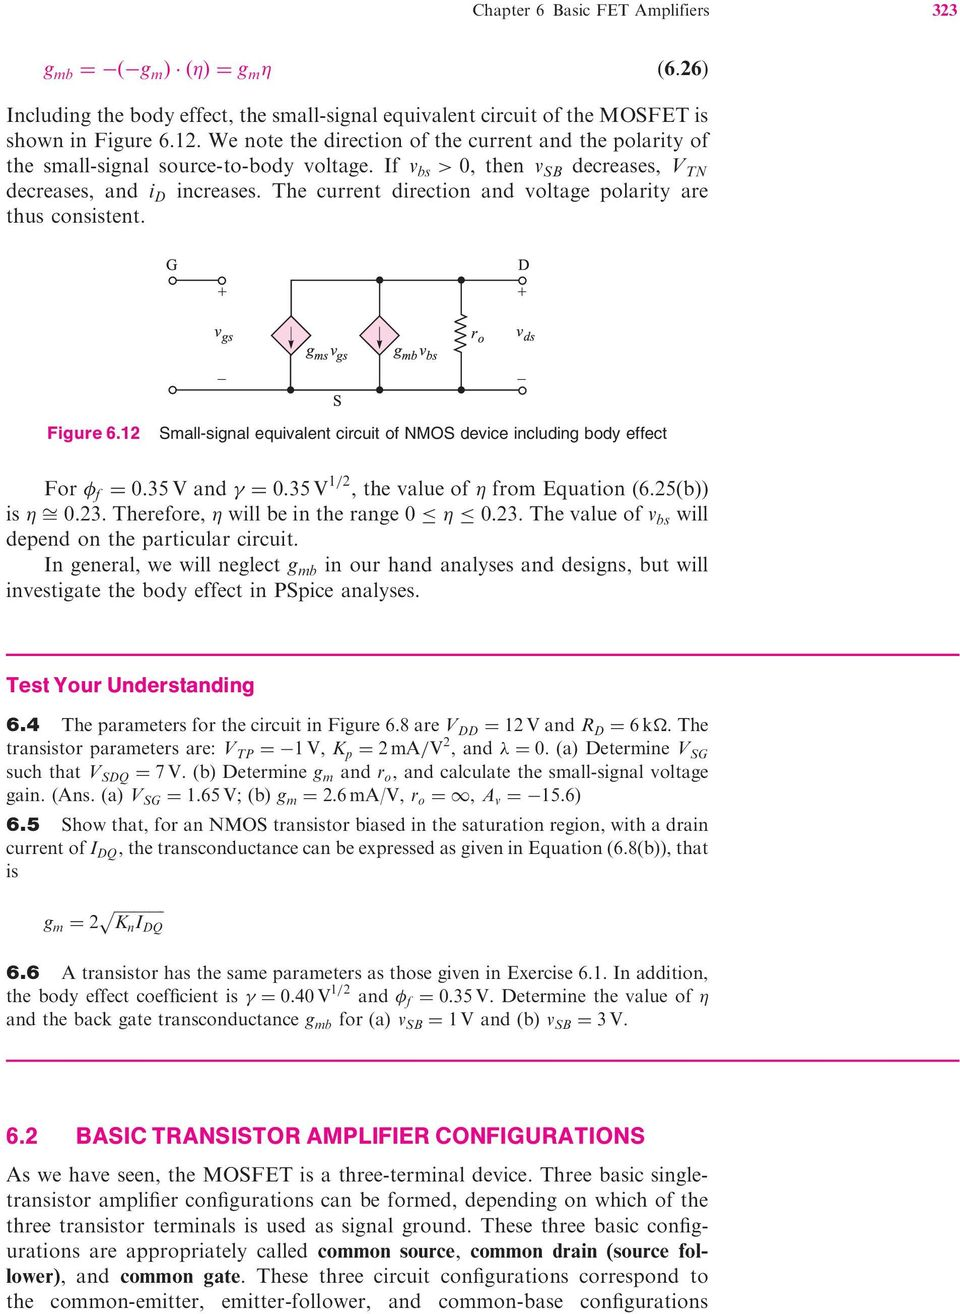 Basic Fet Ampli Ers 60 Preview 61 The Mosfet Amplifier Pdf Simple Transistor Preamplifier Circuits Current Direction And Voltage Polarity Are Thus Consistent Figure 6